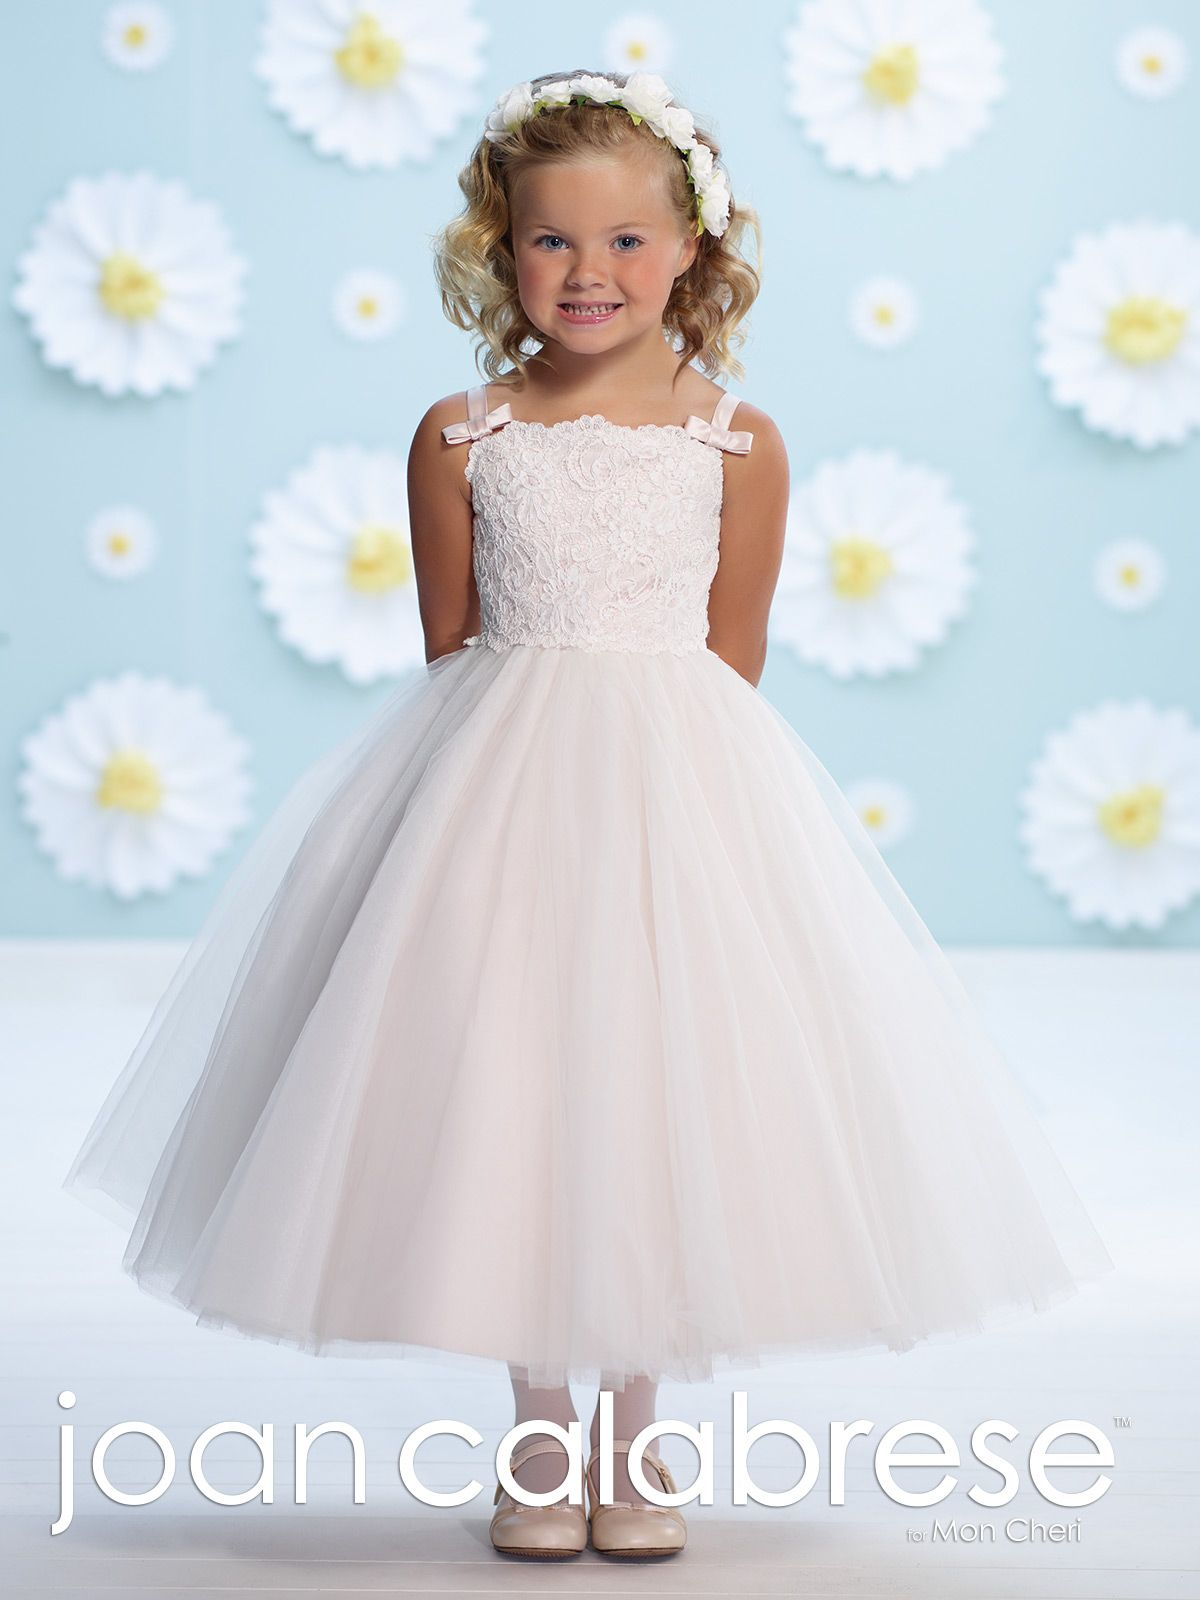 Vintage Young Girls Formal First Communion Baptism Dress Sheer White Ruffled Lace Trim Big Bow I160